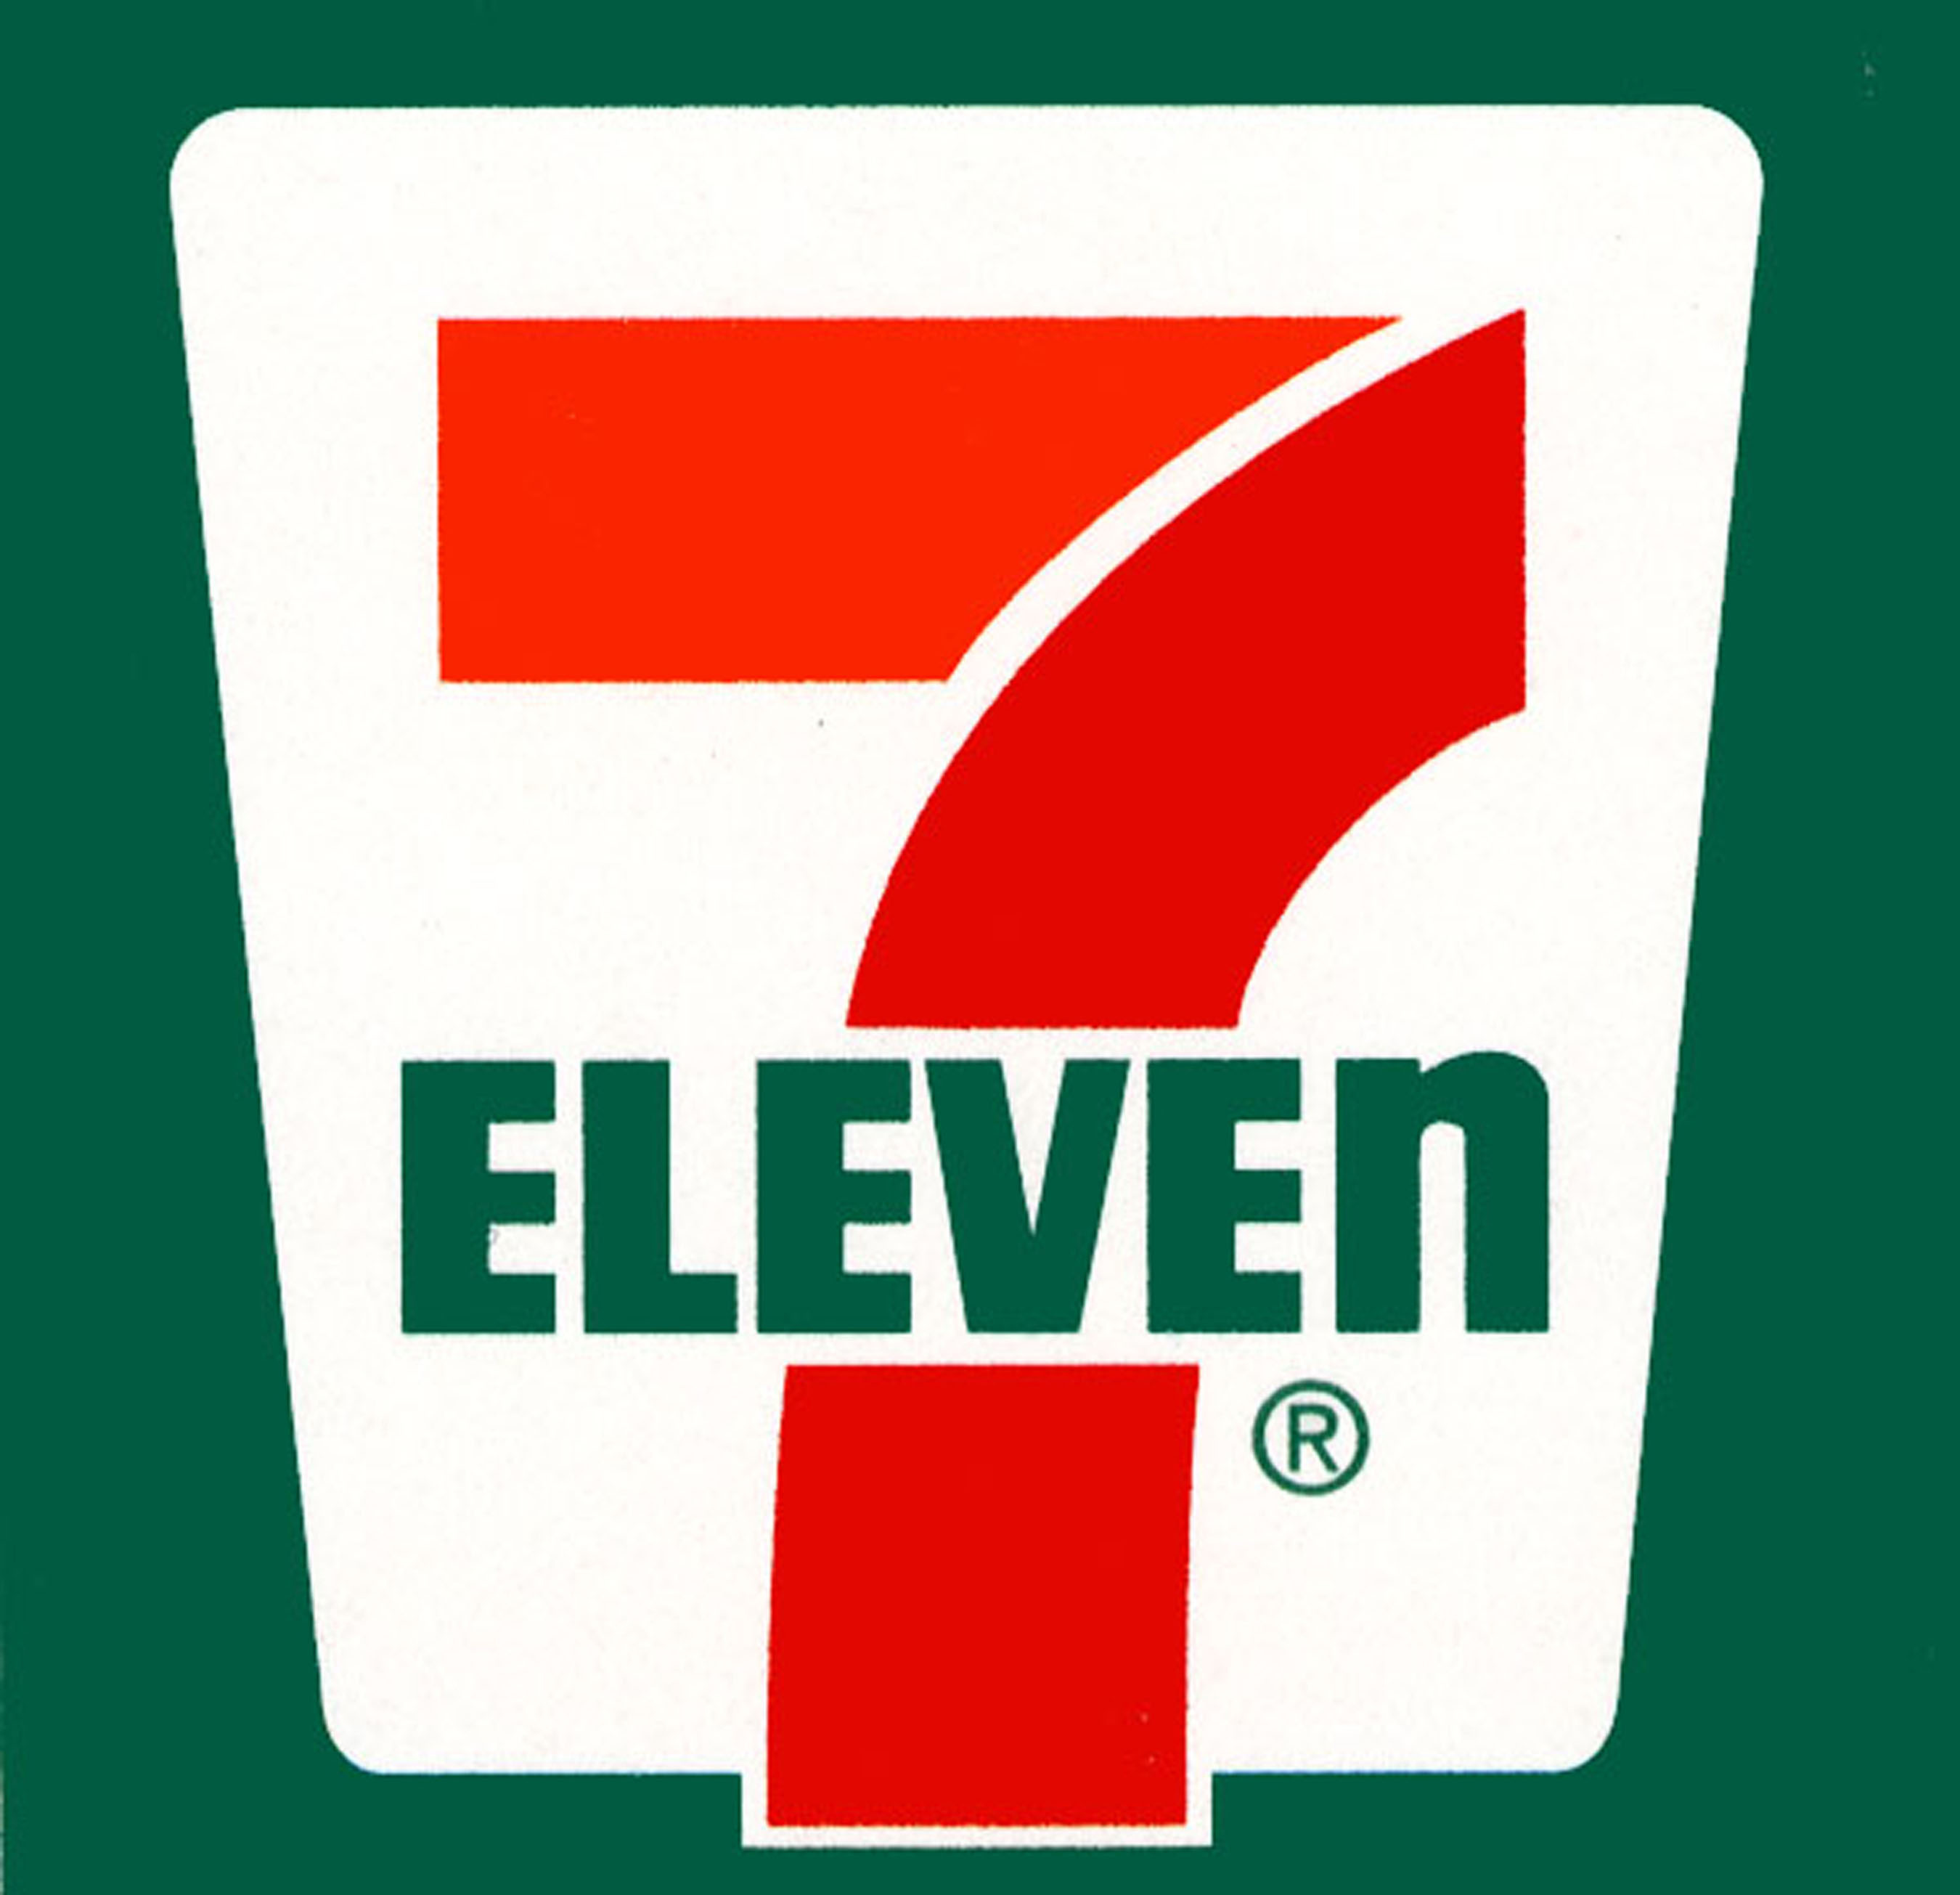 7 eleven inc logo the hotspotorlando